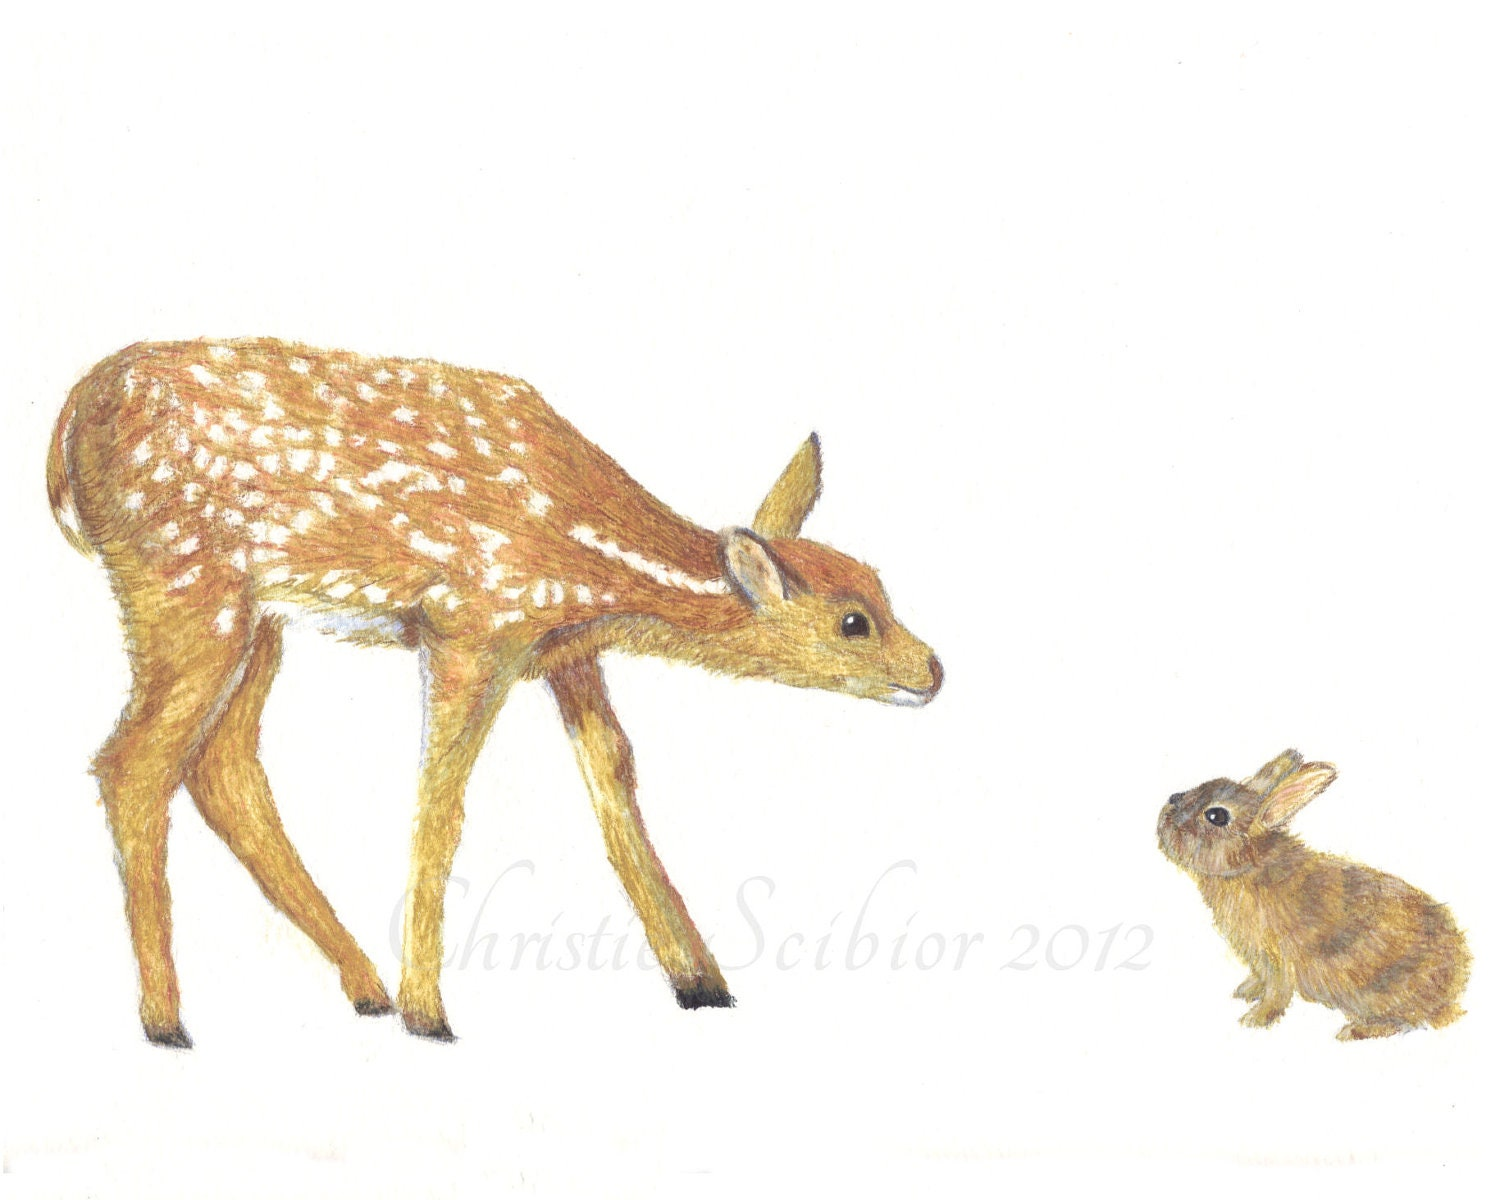 Animal Art Print Deer Fawn & Bunny Rabbit Wildlife Watercolor painting Wall Art Home Decor Childrens room nursery baby 5x7 Archival - ChristieScibior